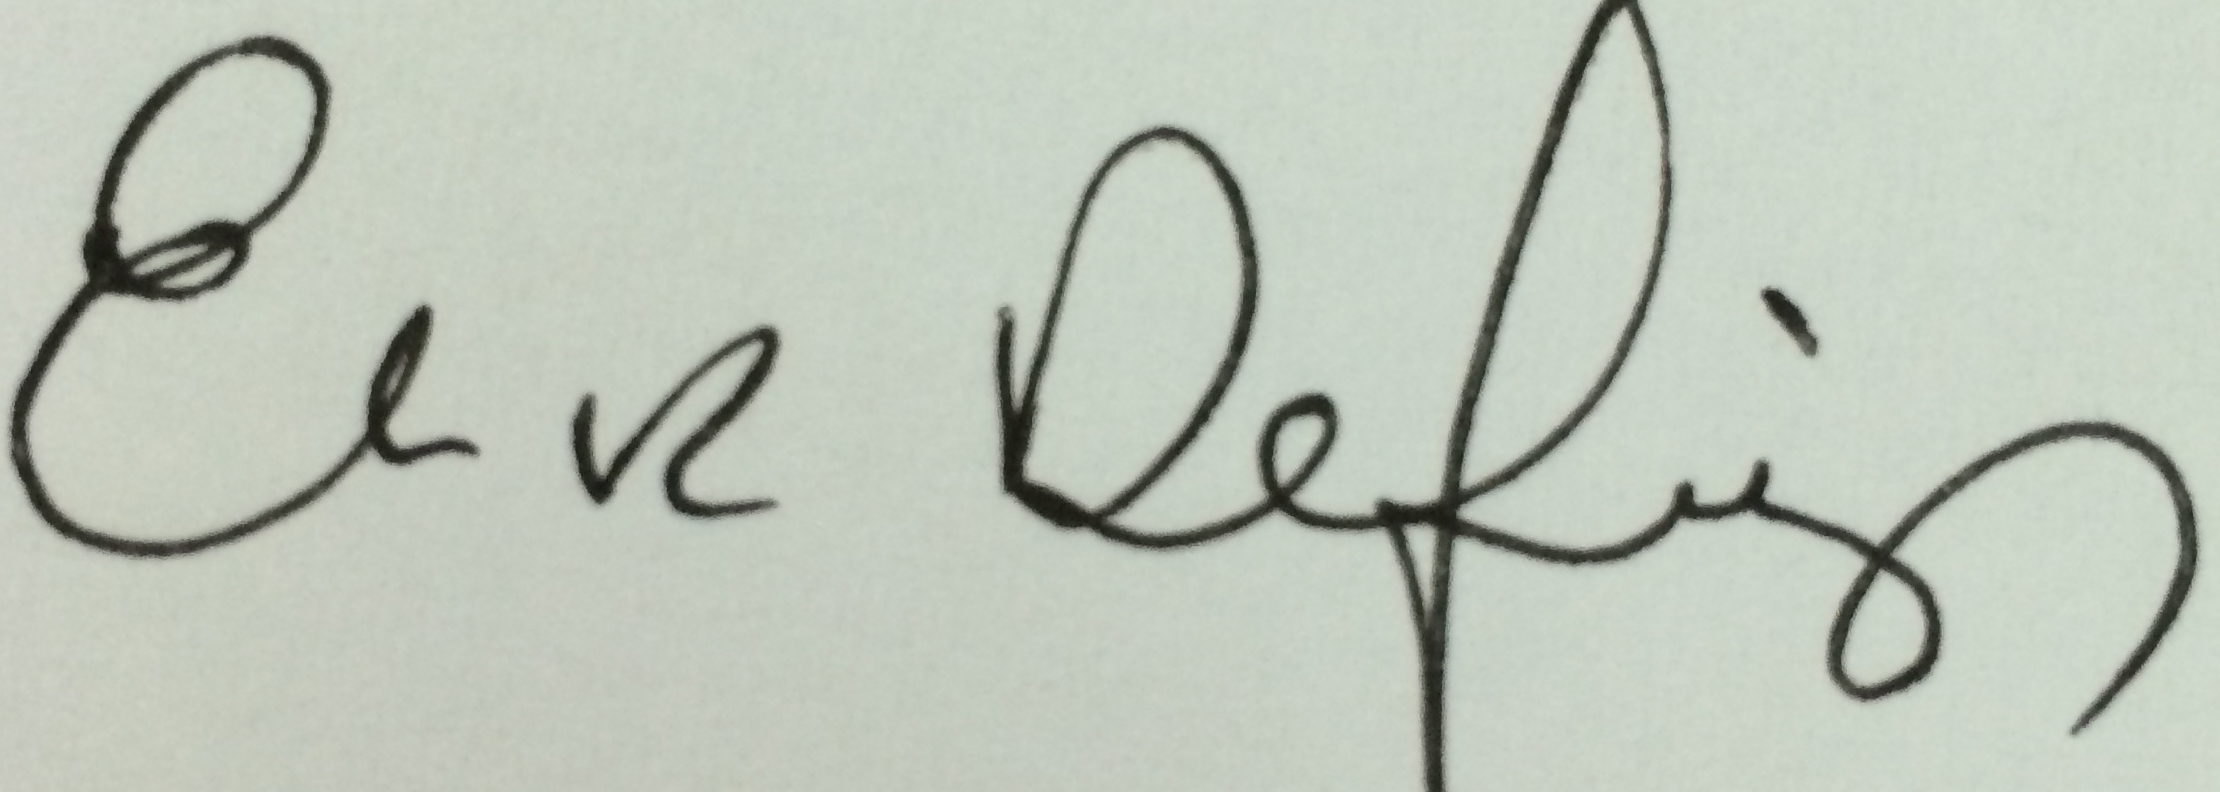 Elaine Defibaugh Signature